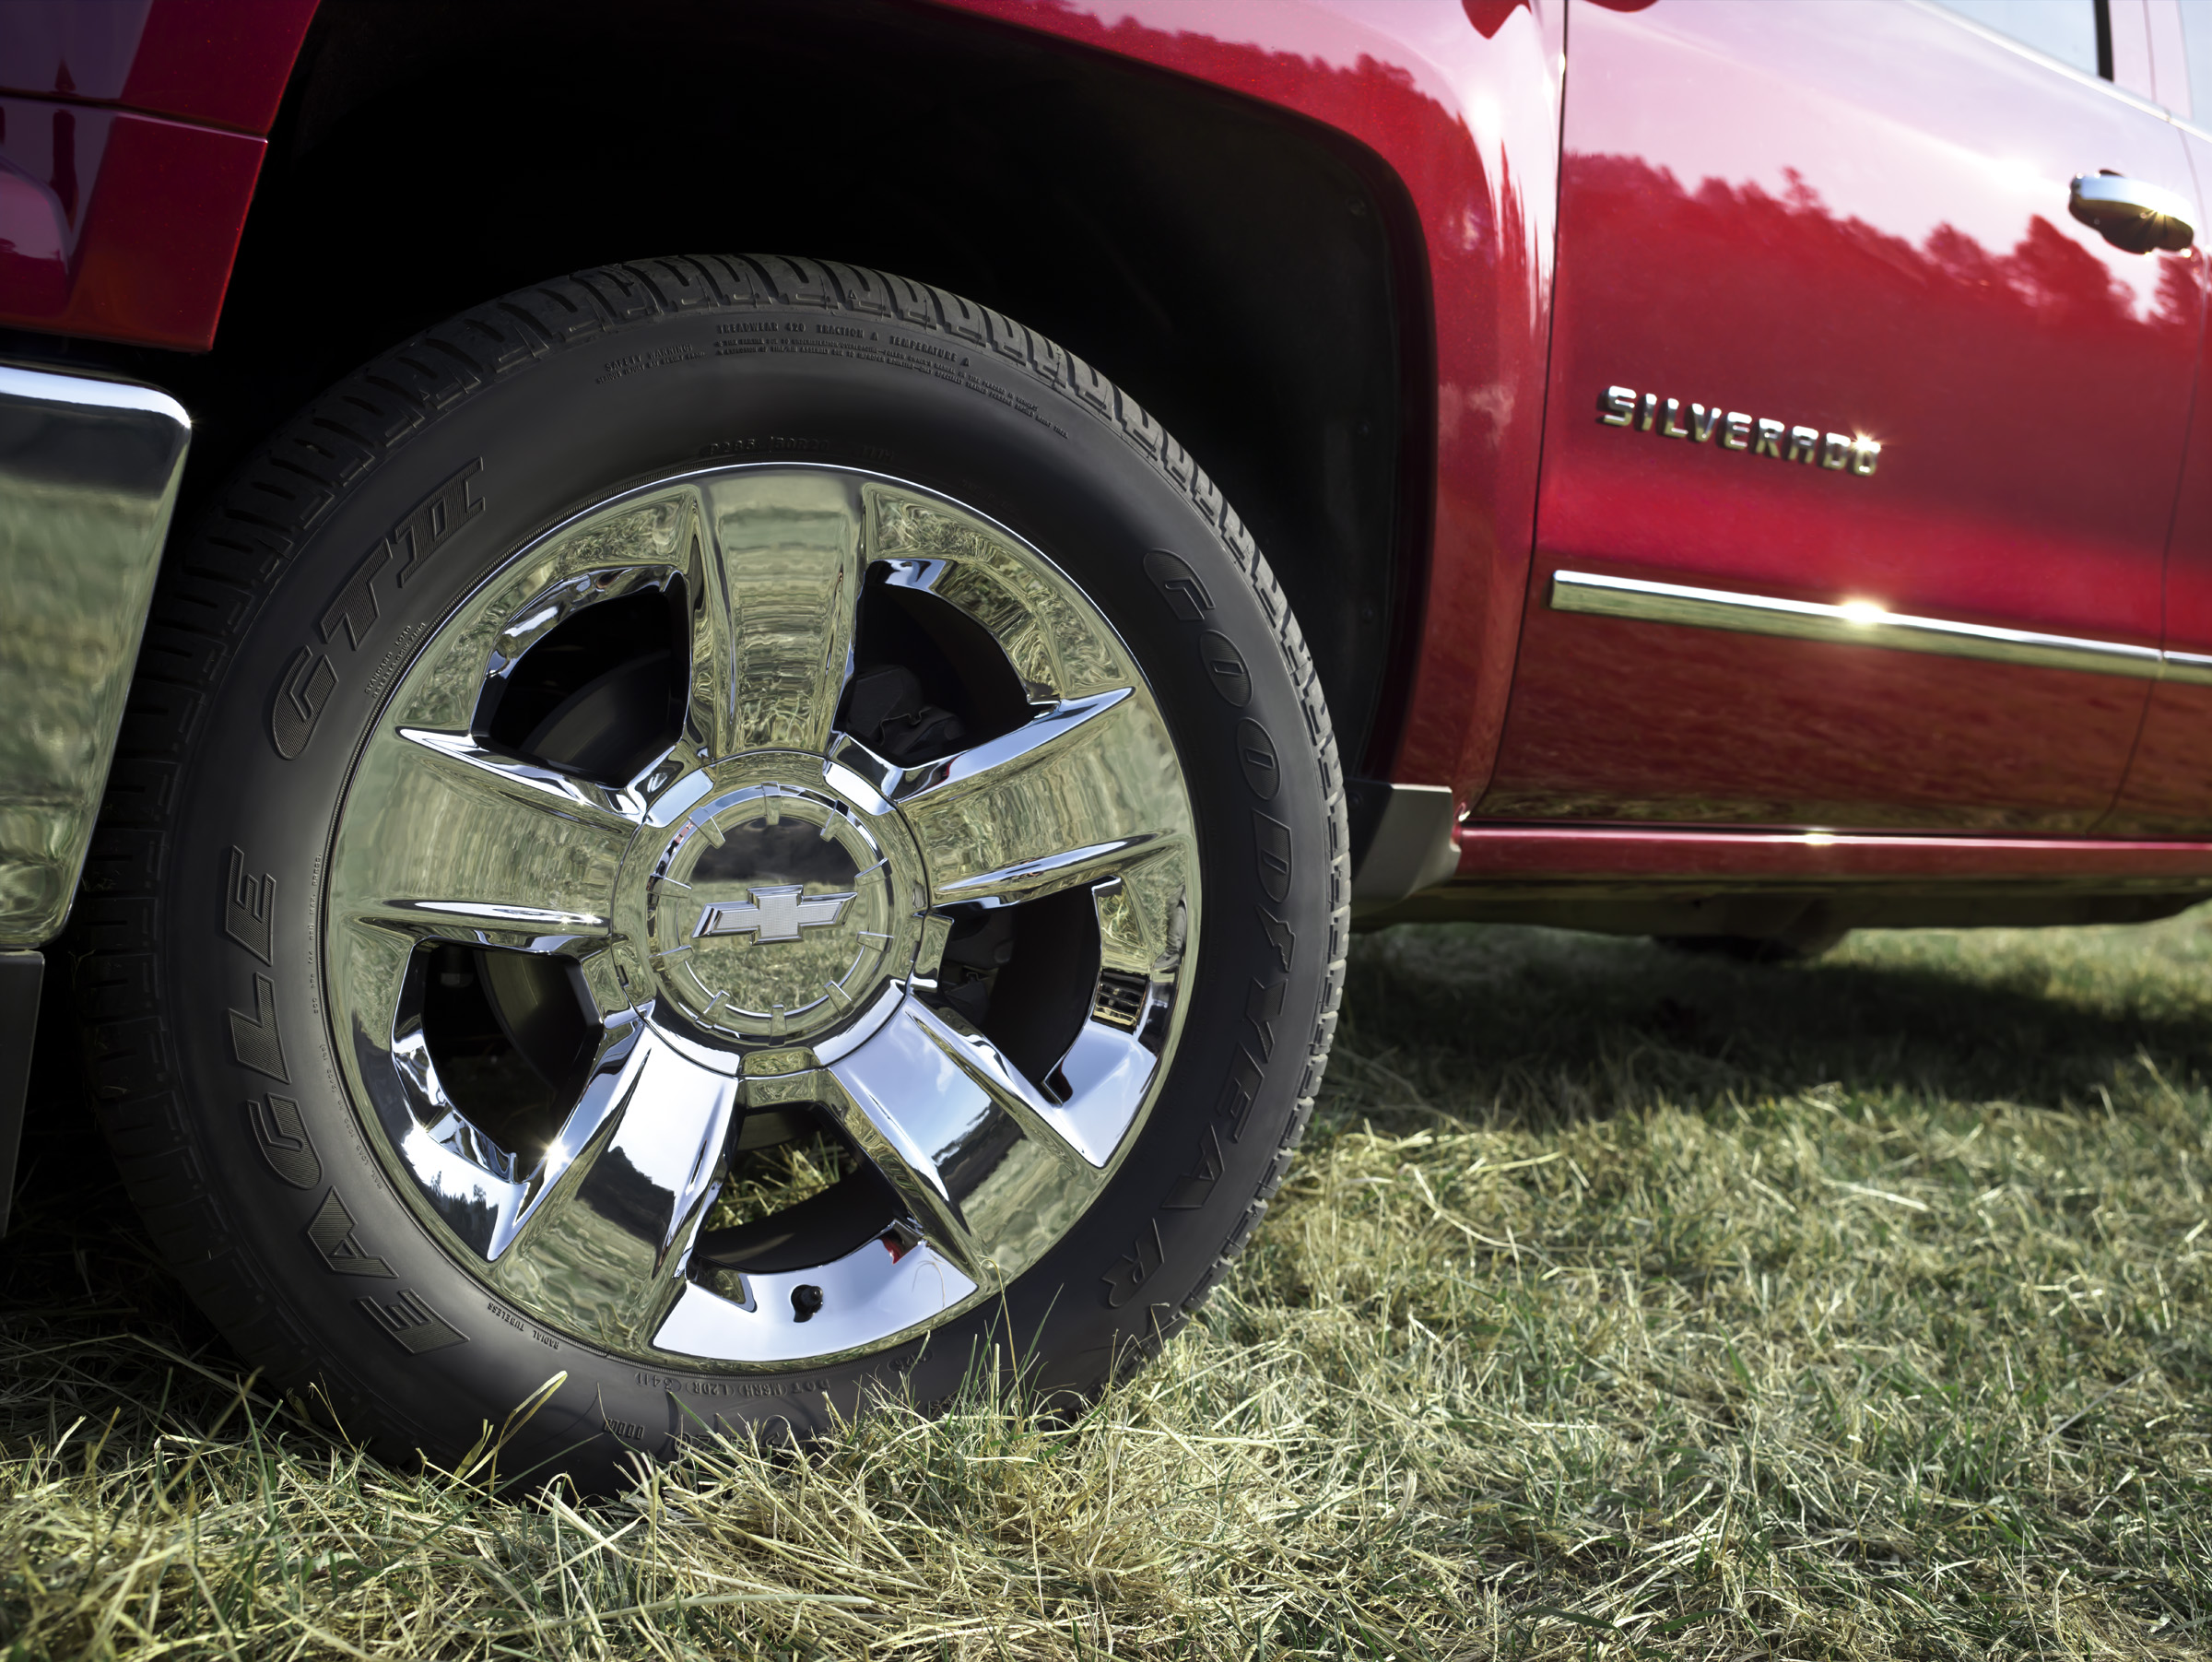 styles chevrolet black inspiring beat streetrally rims u pic alloy of wheels et and ats trend